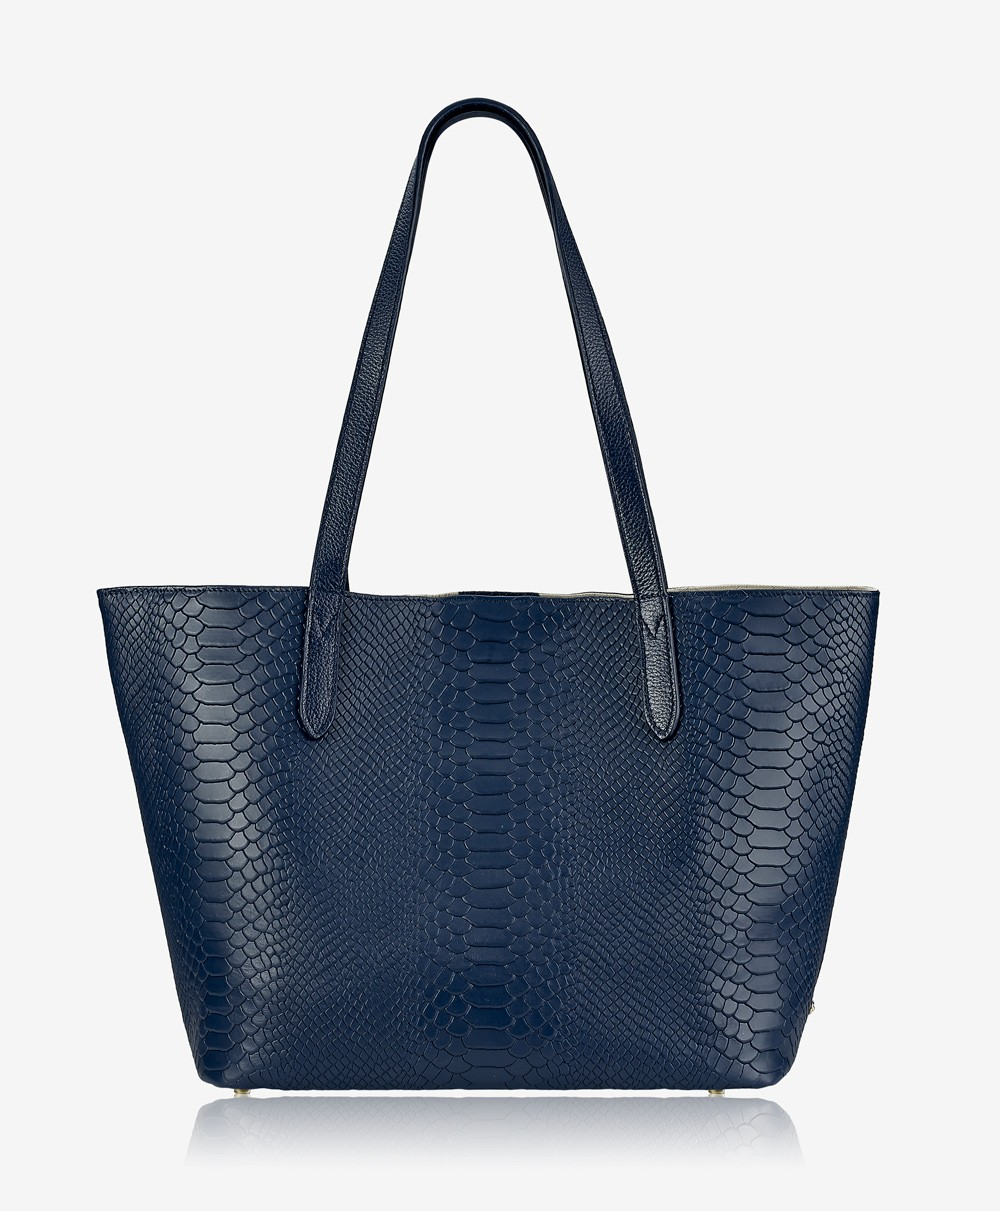 15000d05f0c8 The Best Totes for Work